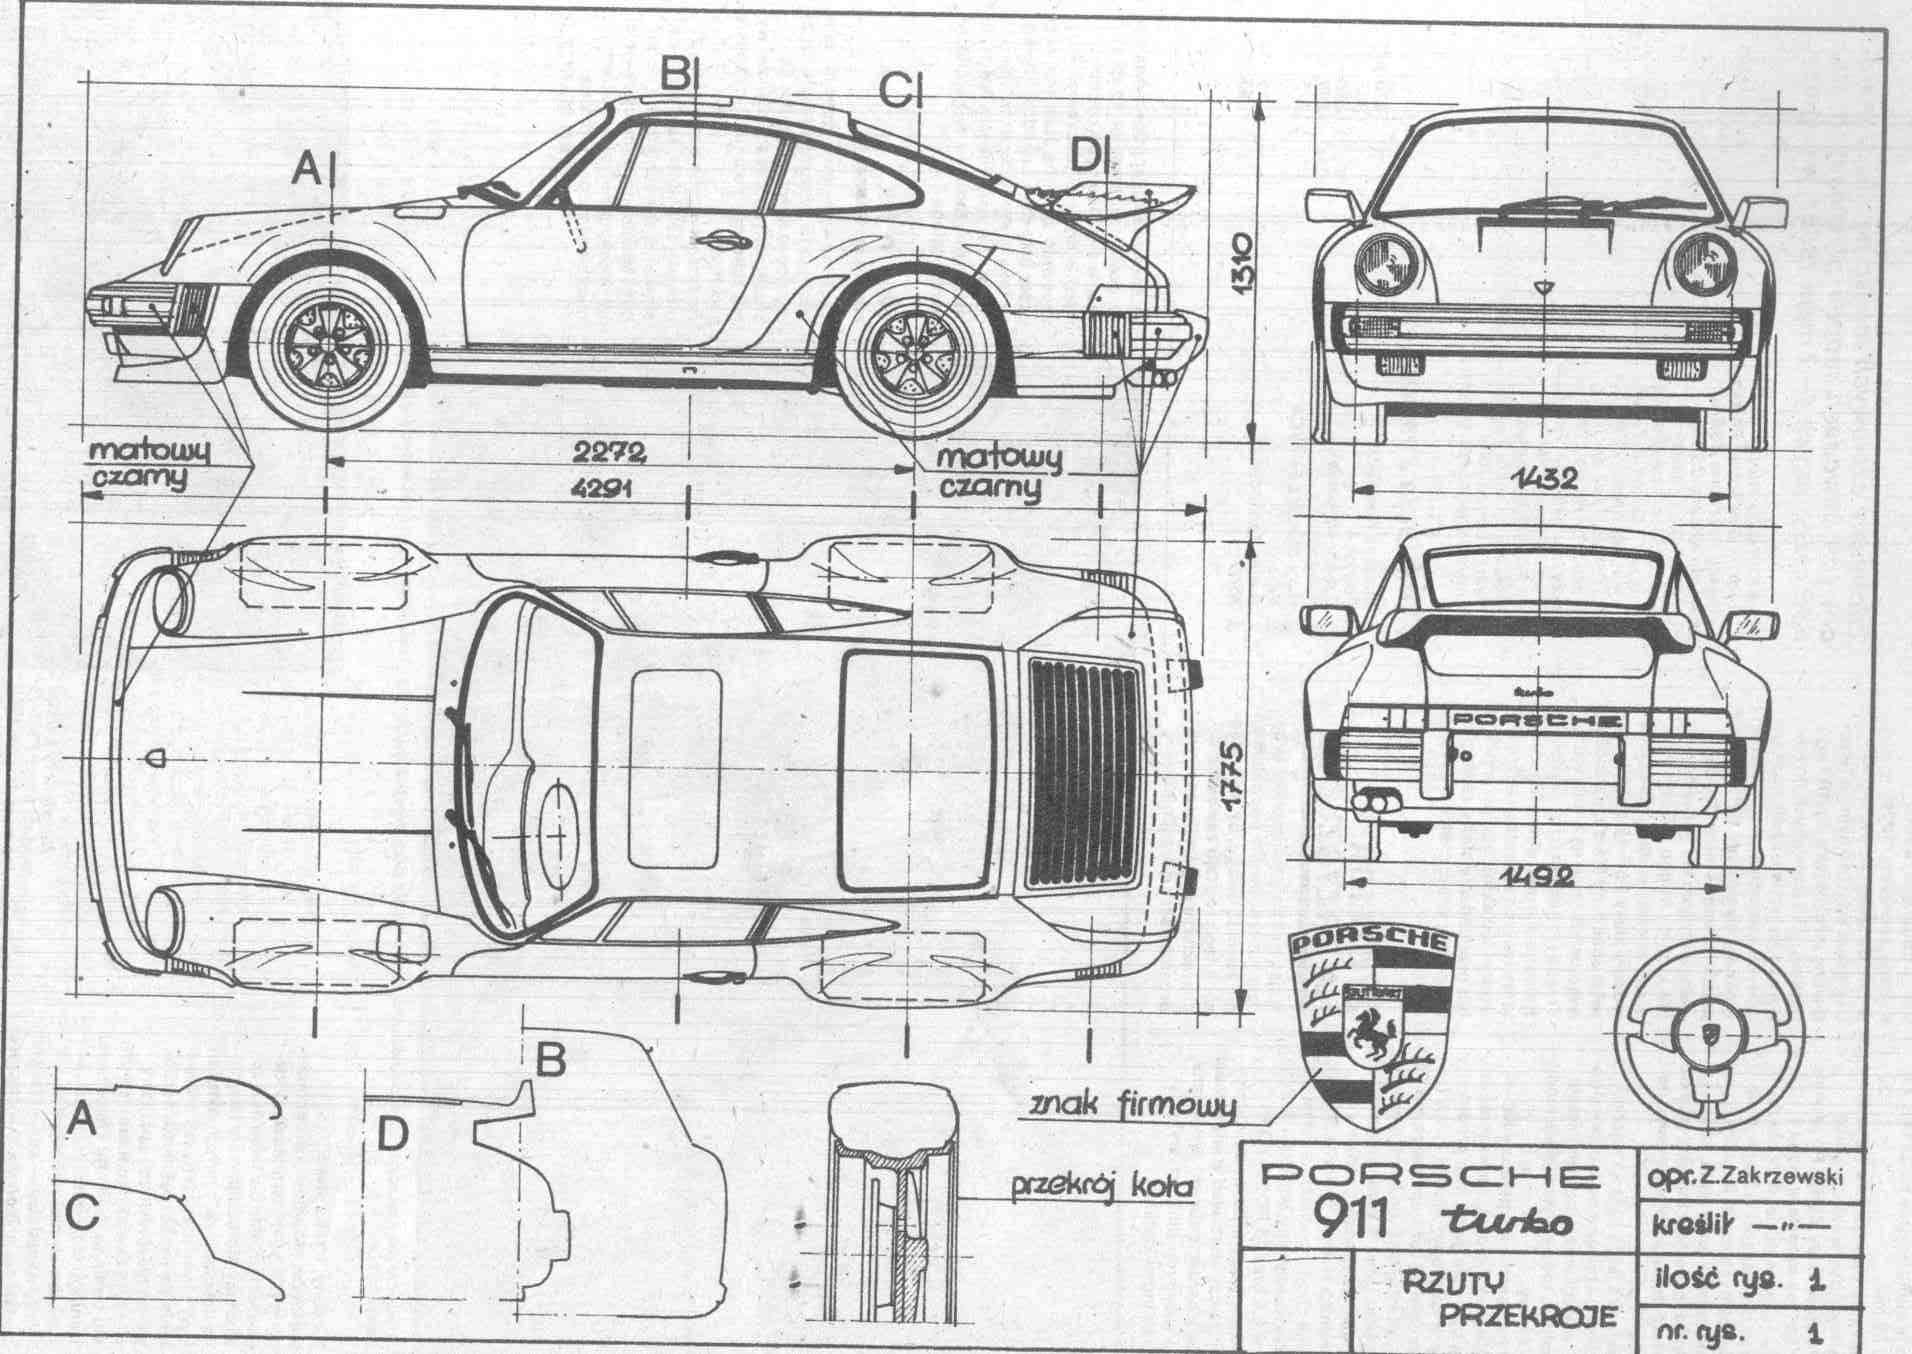 Porsche 911 Turbo Blueprint Download Free Blueprint For